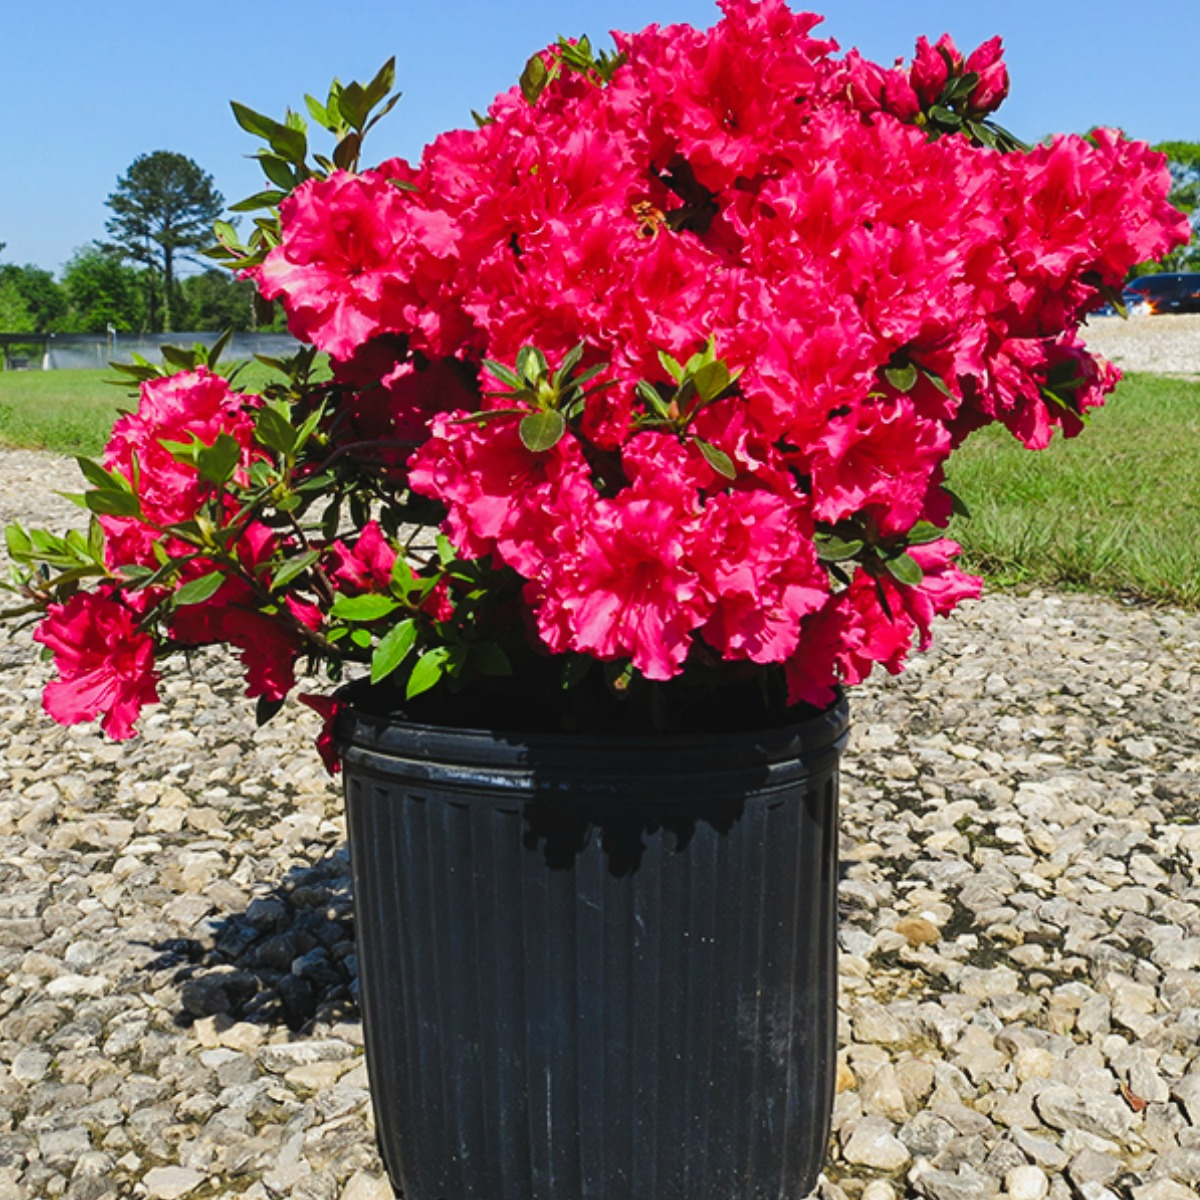 Potted plant with large pink flowers